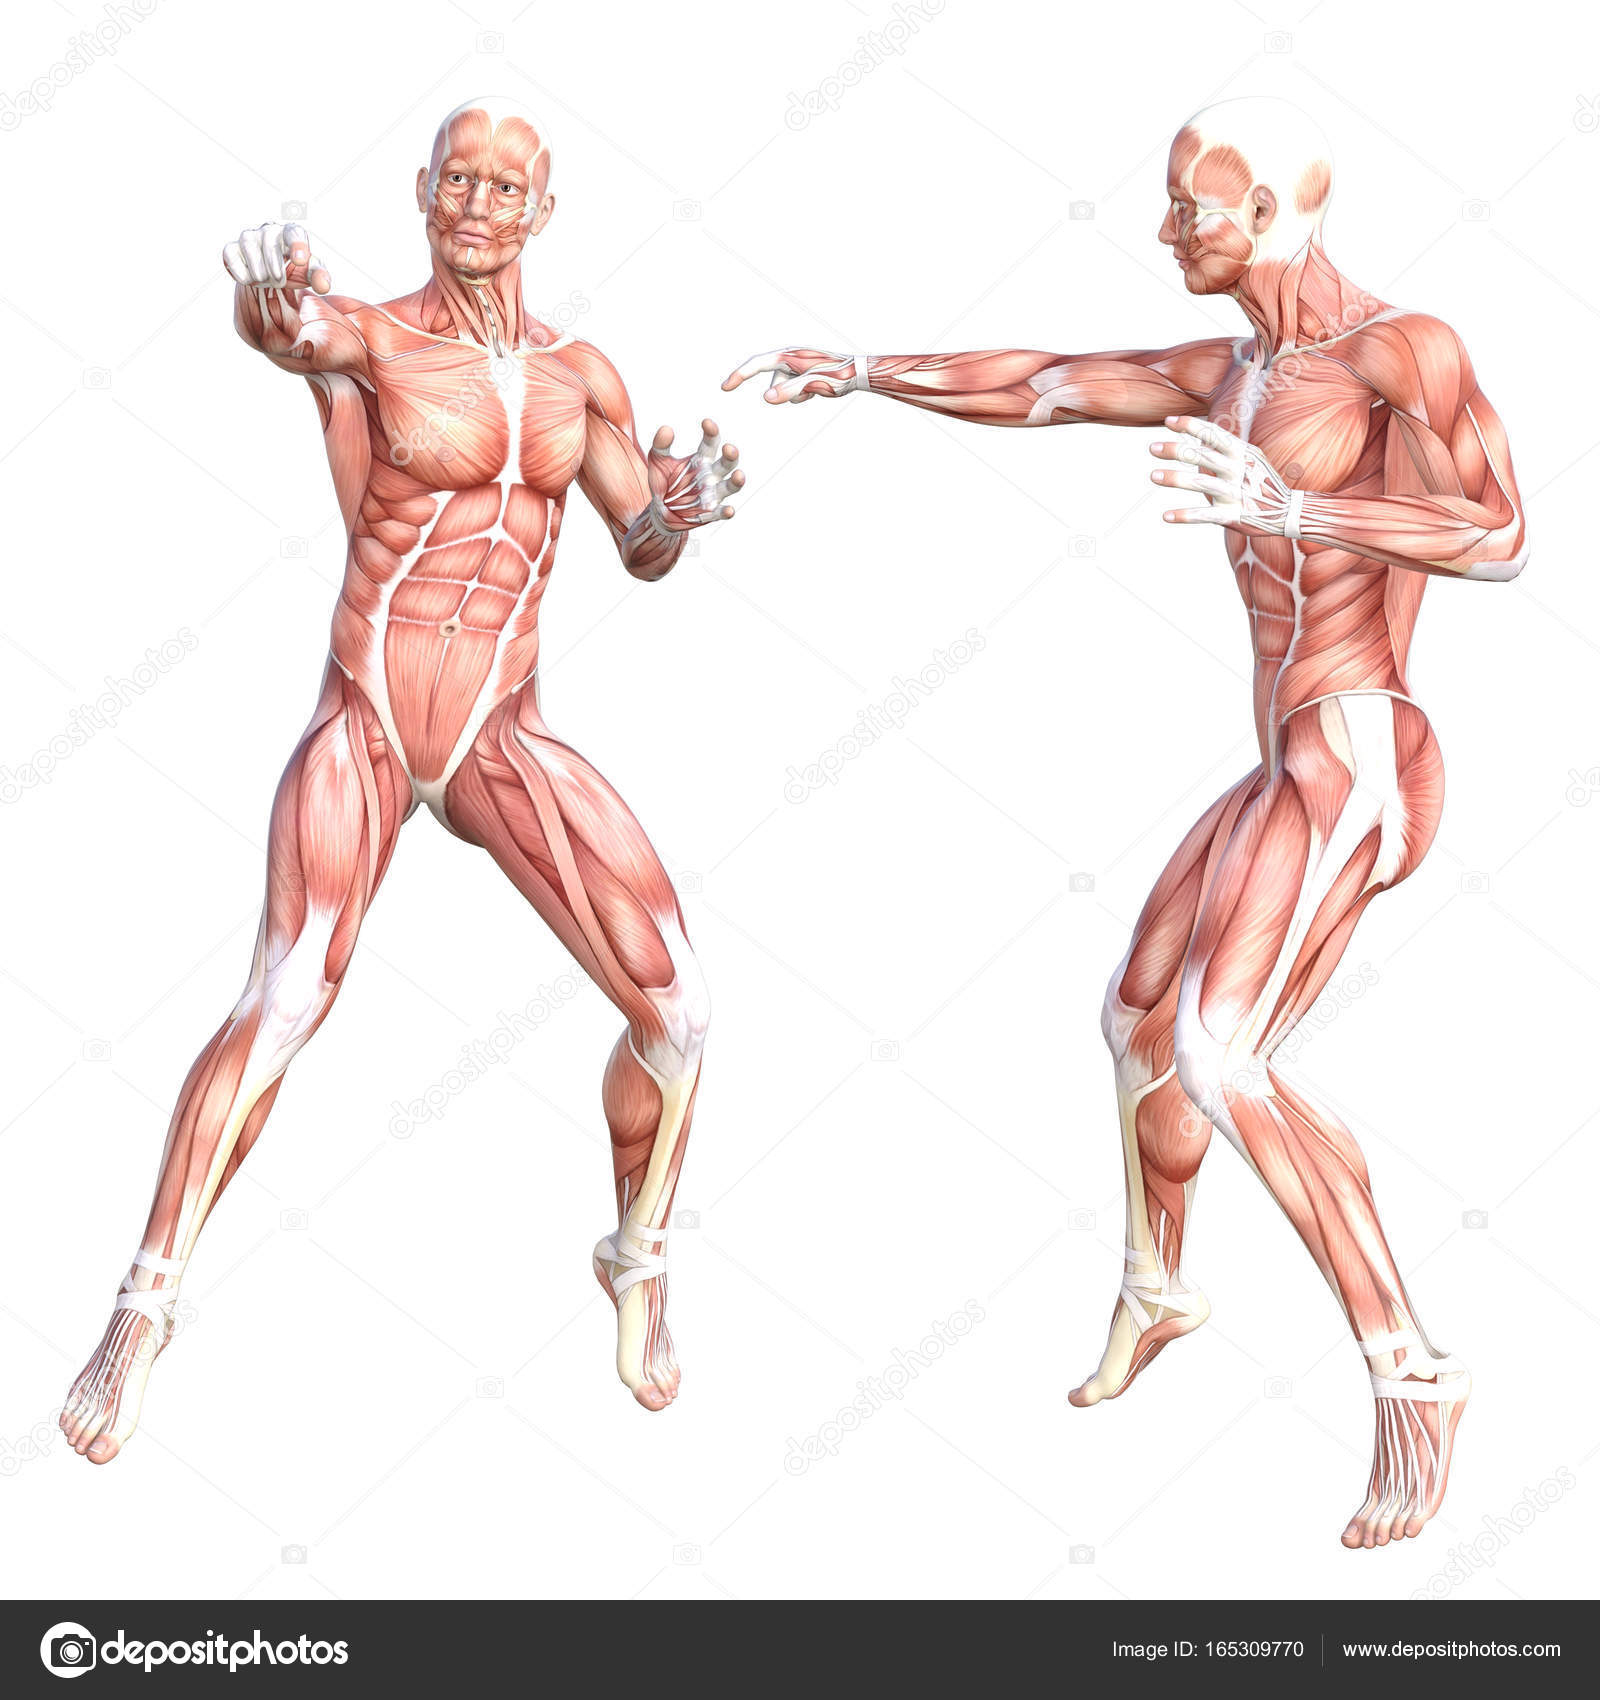 Conceptual anatomy healthy skinless human body muscle system set ...